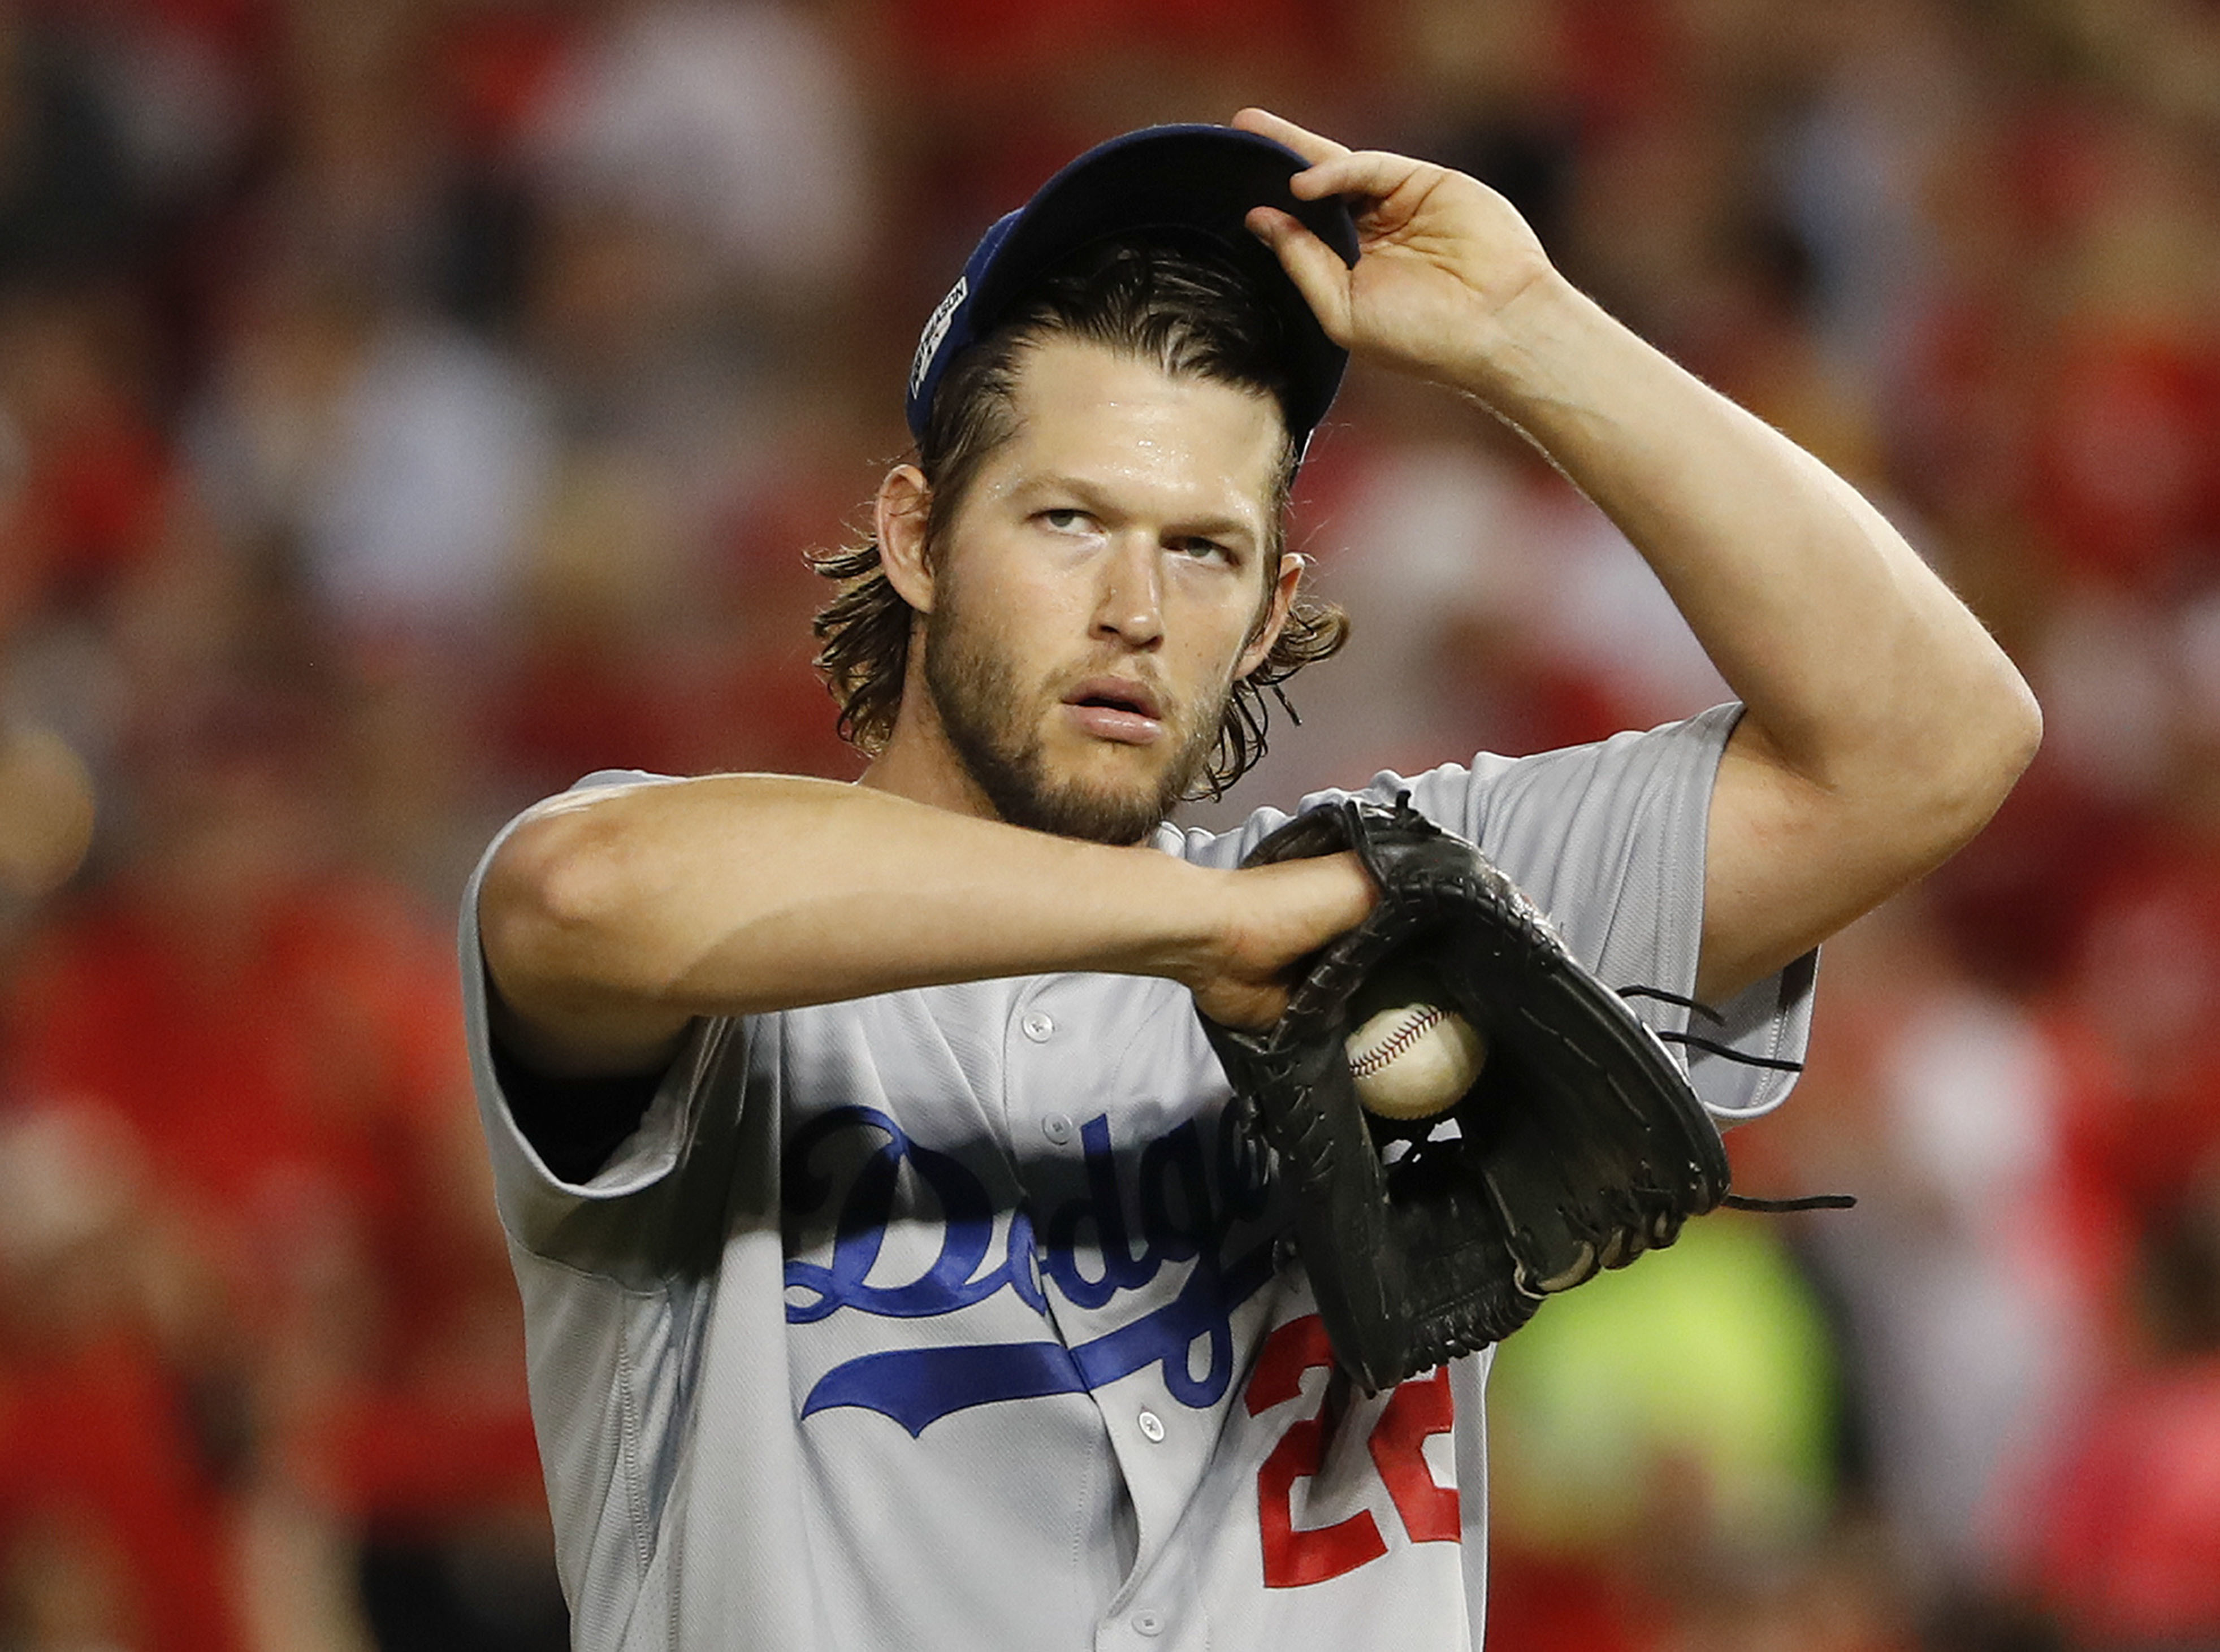 Los Angeles Dodgers starting pitcher Clayton Kershaw adjusts his cap after allowing a double by Washington Nationals' Bryce Harper during the third inning in Game 1 of baseball's National League Division Series at Nationals Park, Friday, Oct. 7, 2016, in